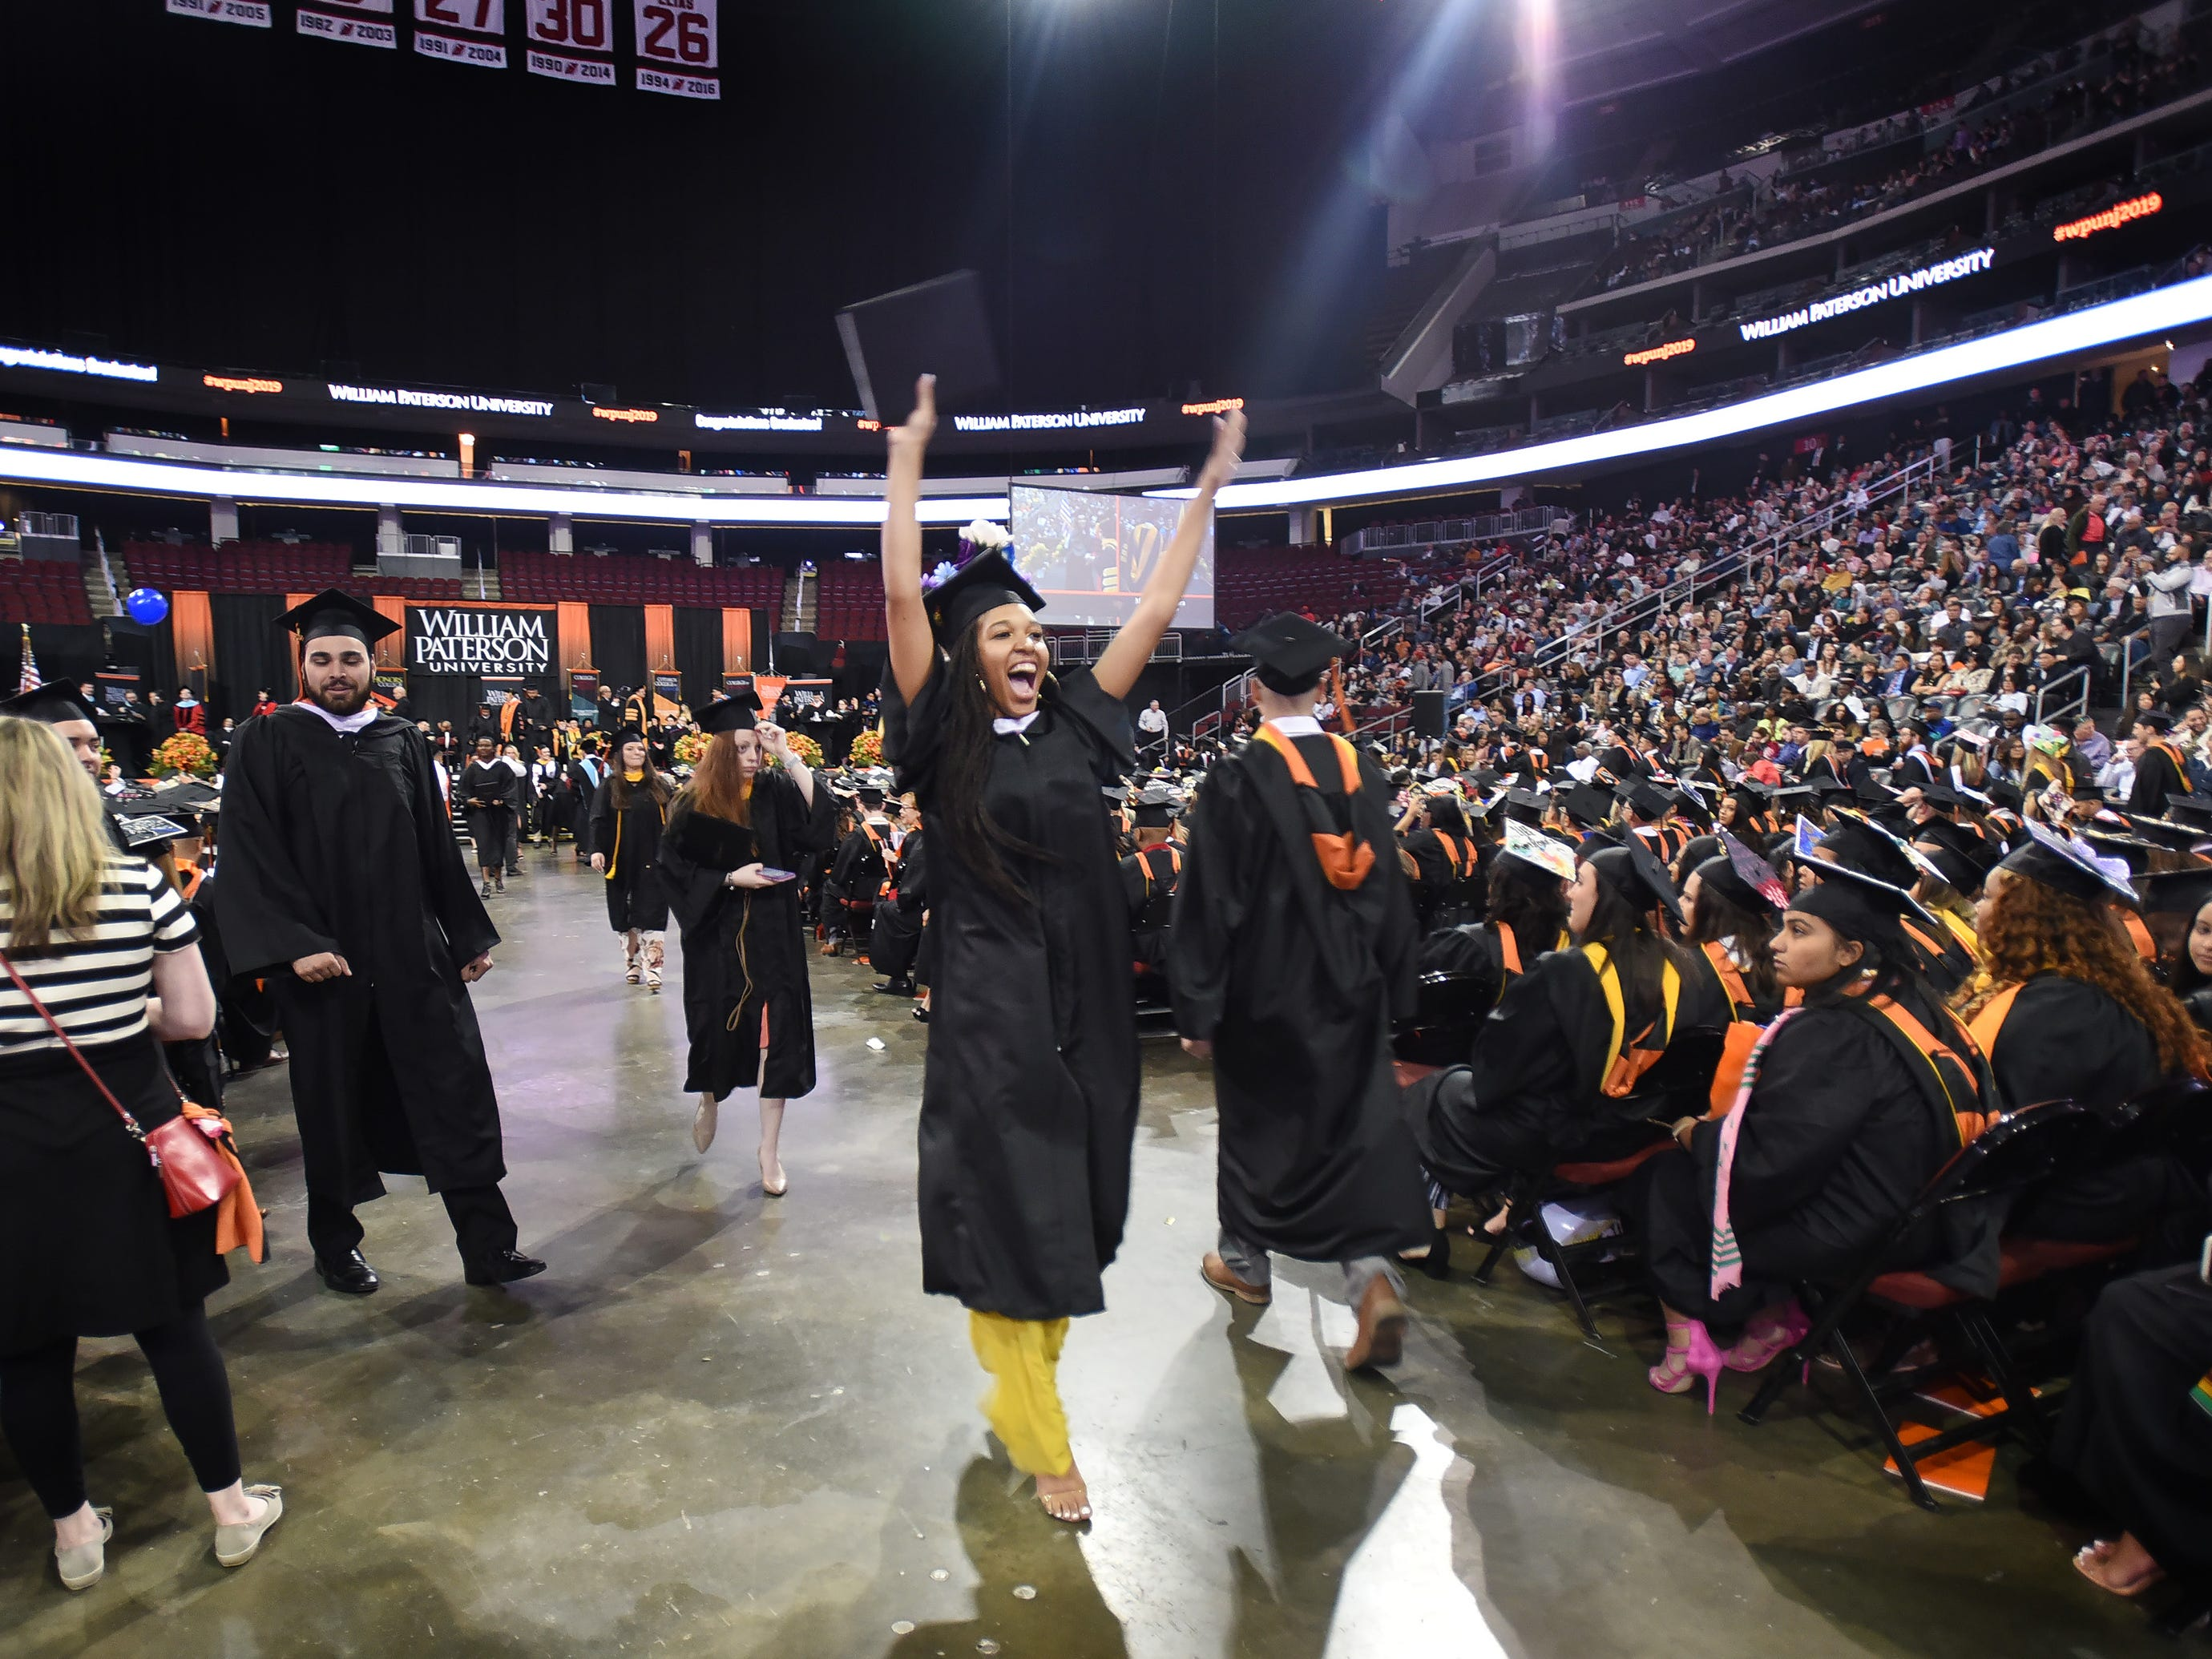 Daijah Smalls of Clifton, Major in Sports Management, reacts after receiving her degree during the William Paterson University 2019 Commencement at the Prudential Center in Newark on 05/15/19.